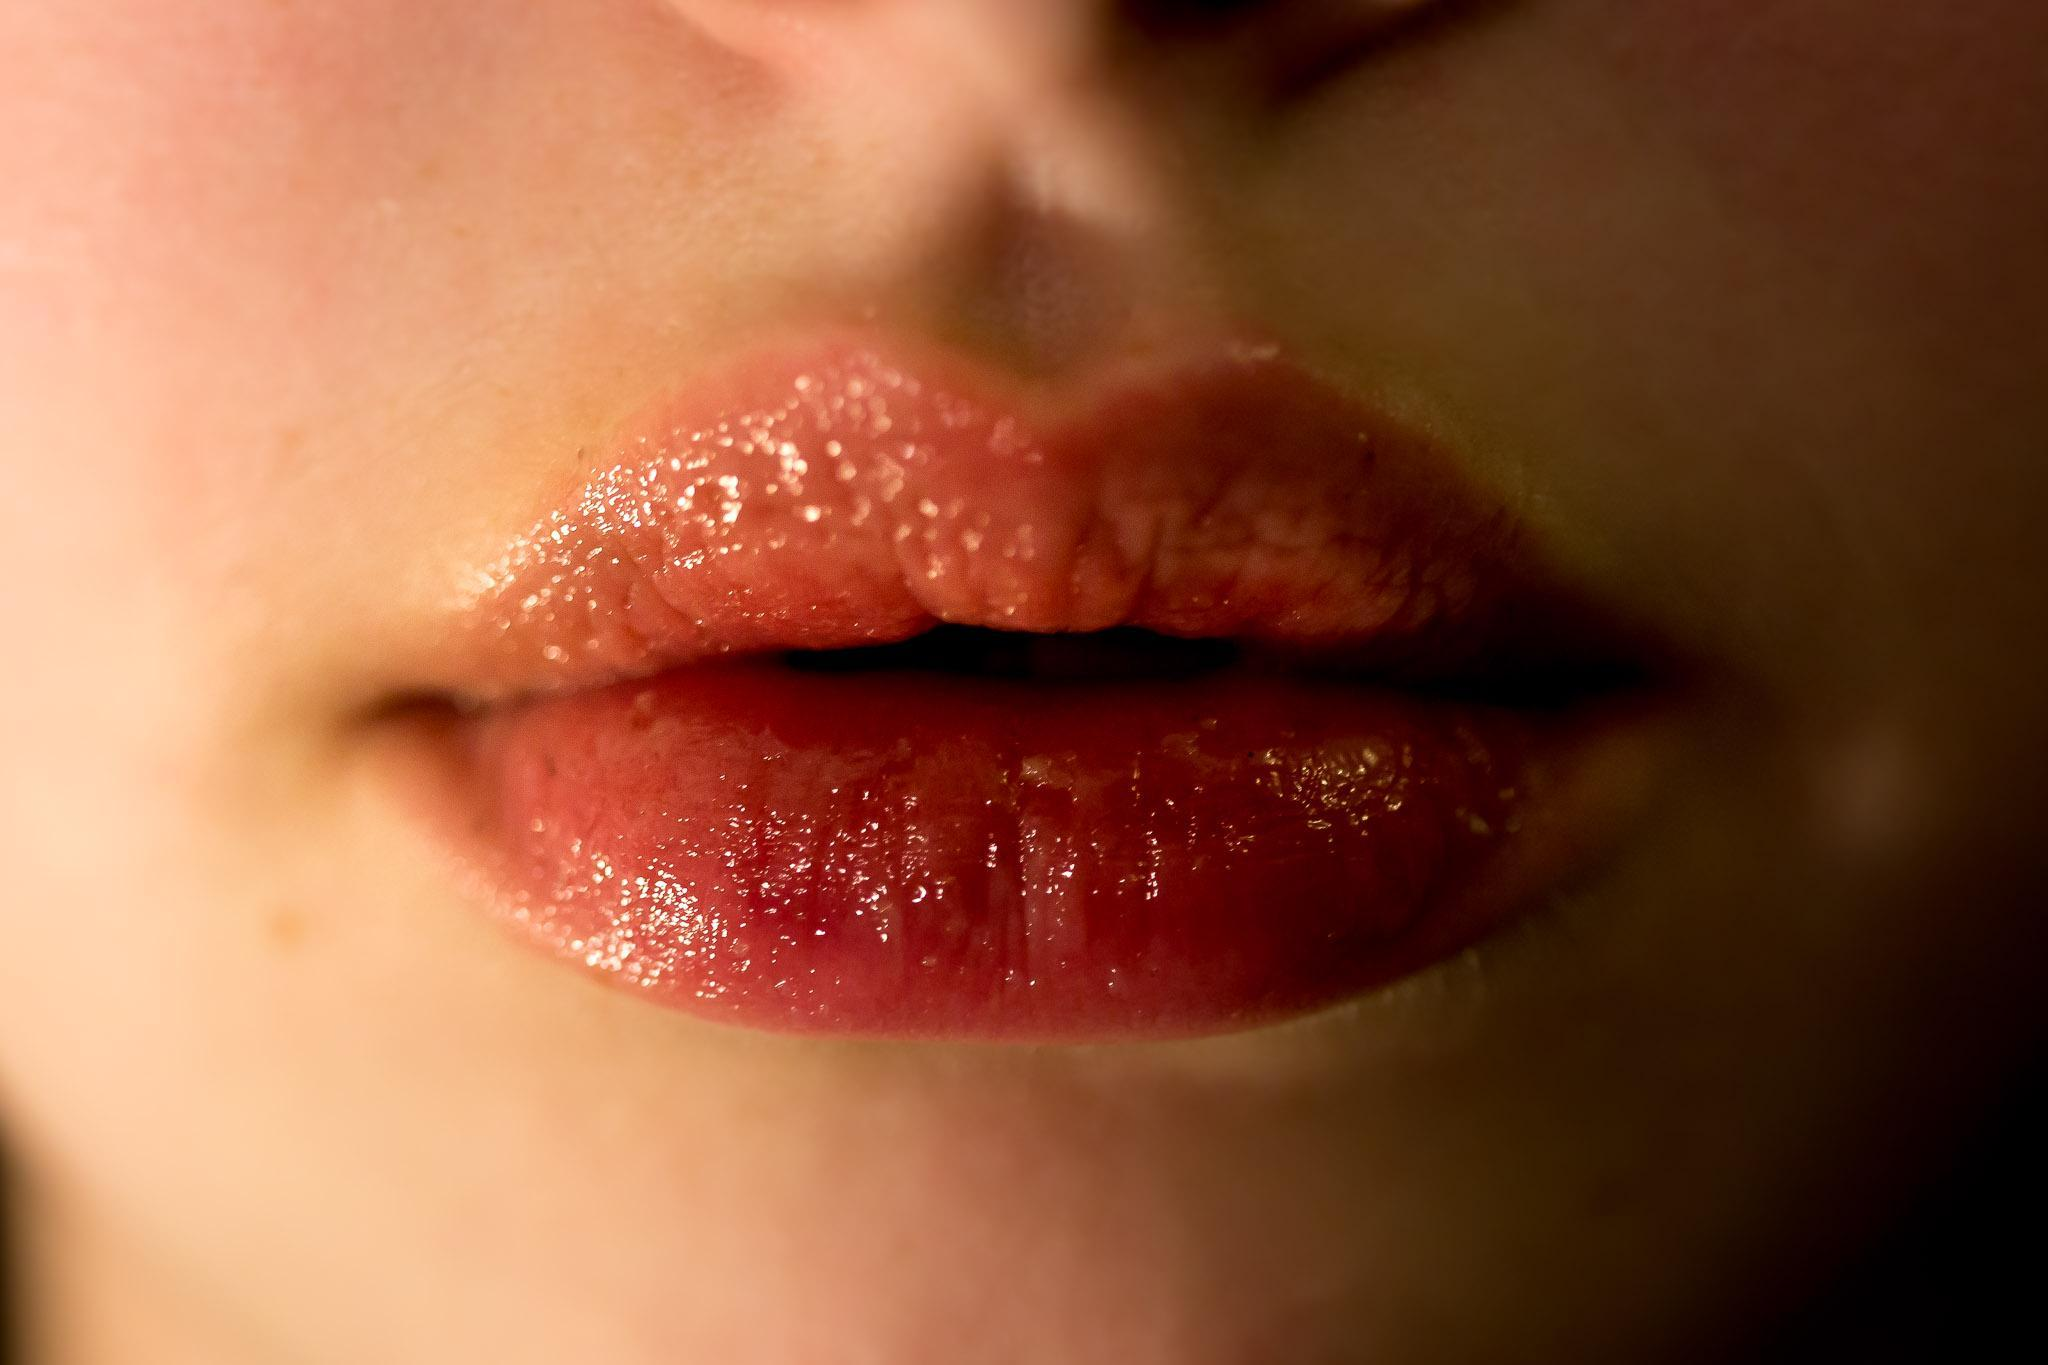 For Valentine's Day — or really any day ­­­— get soft, smooth lips by exfoliating, moisturizing and using a lip mask.